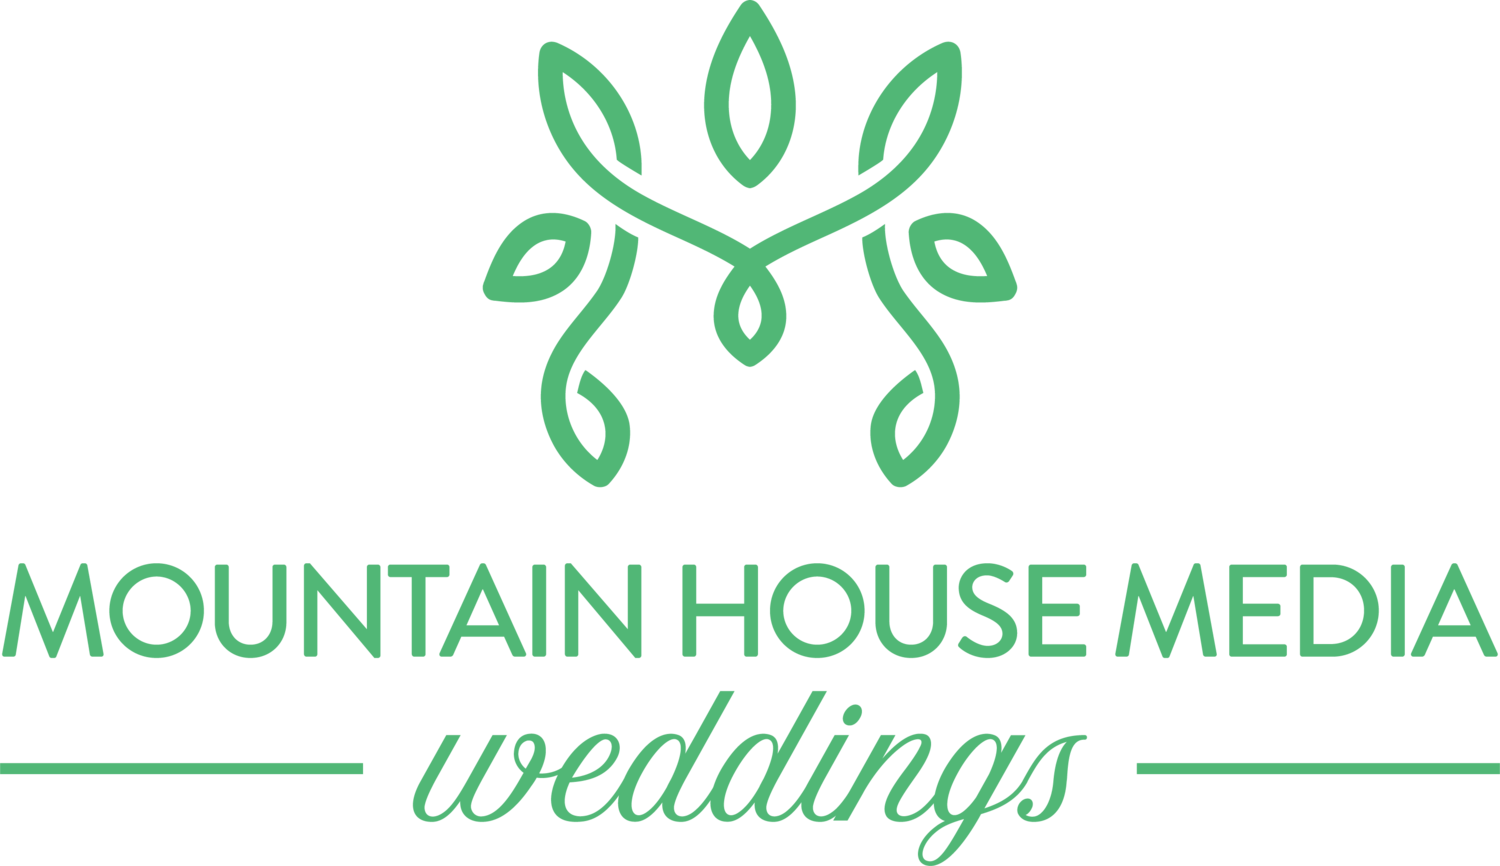 Mountain House Media Weddings